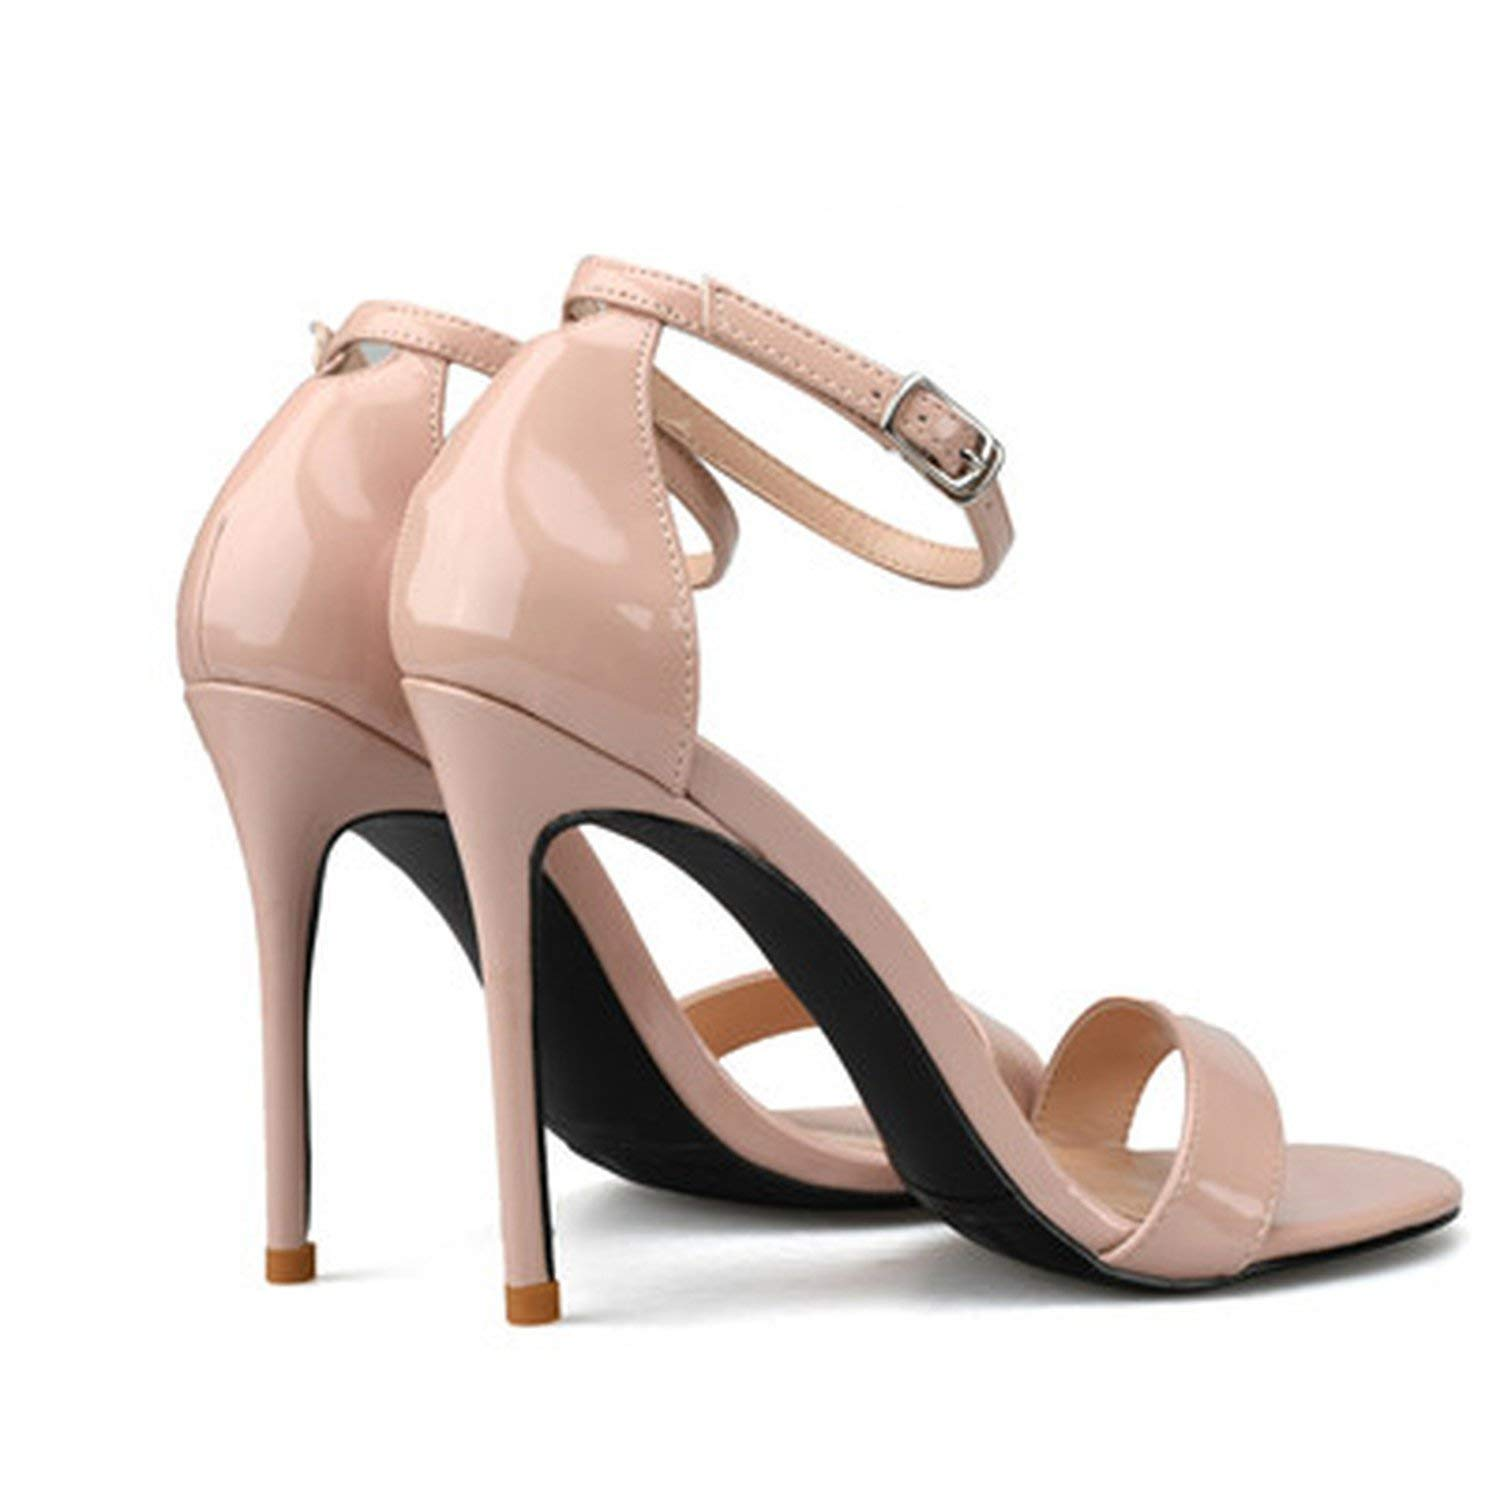 af2e4823493 Get Quotations · Magic-MC Women Sandals High Heels Leather Sexy Nude Ankle Strappy  Sandals Female High Heels